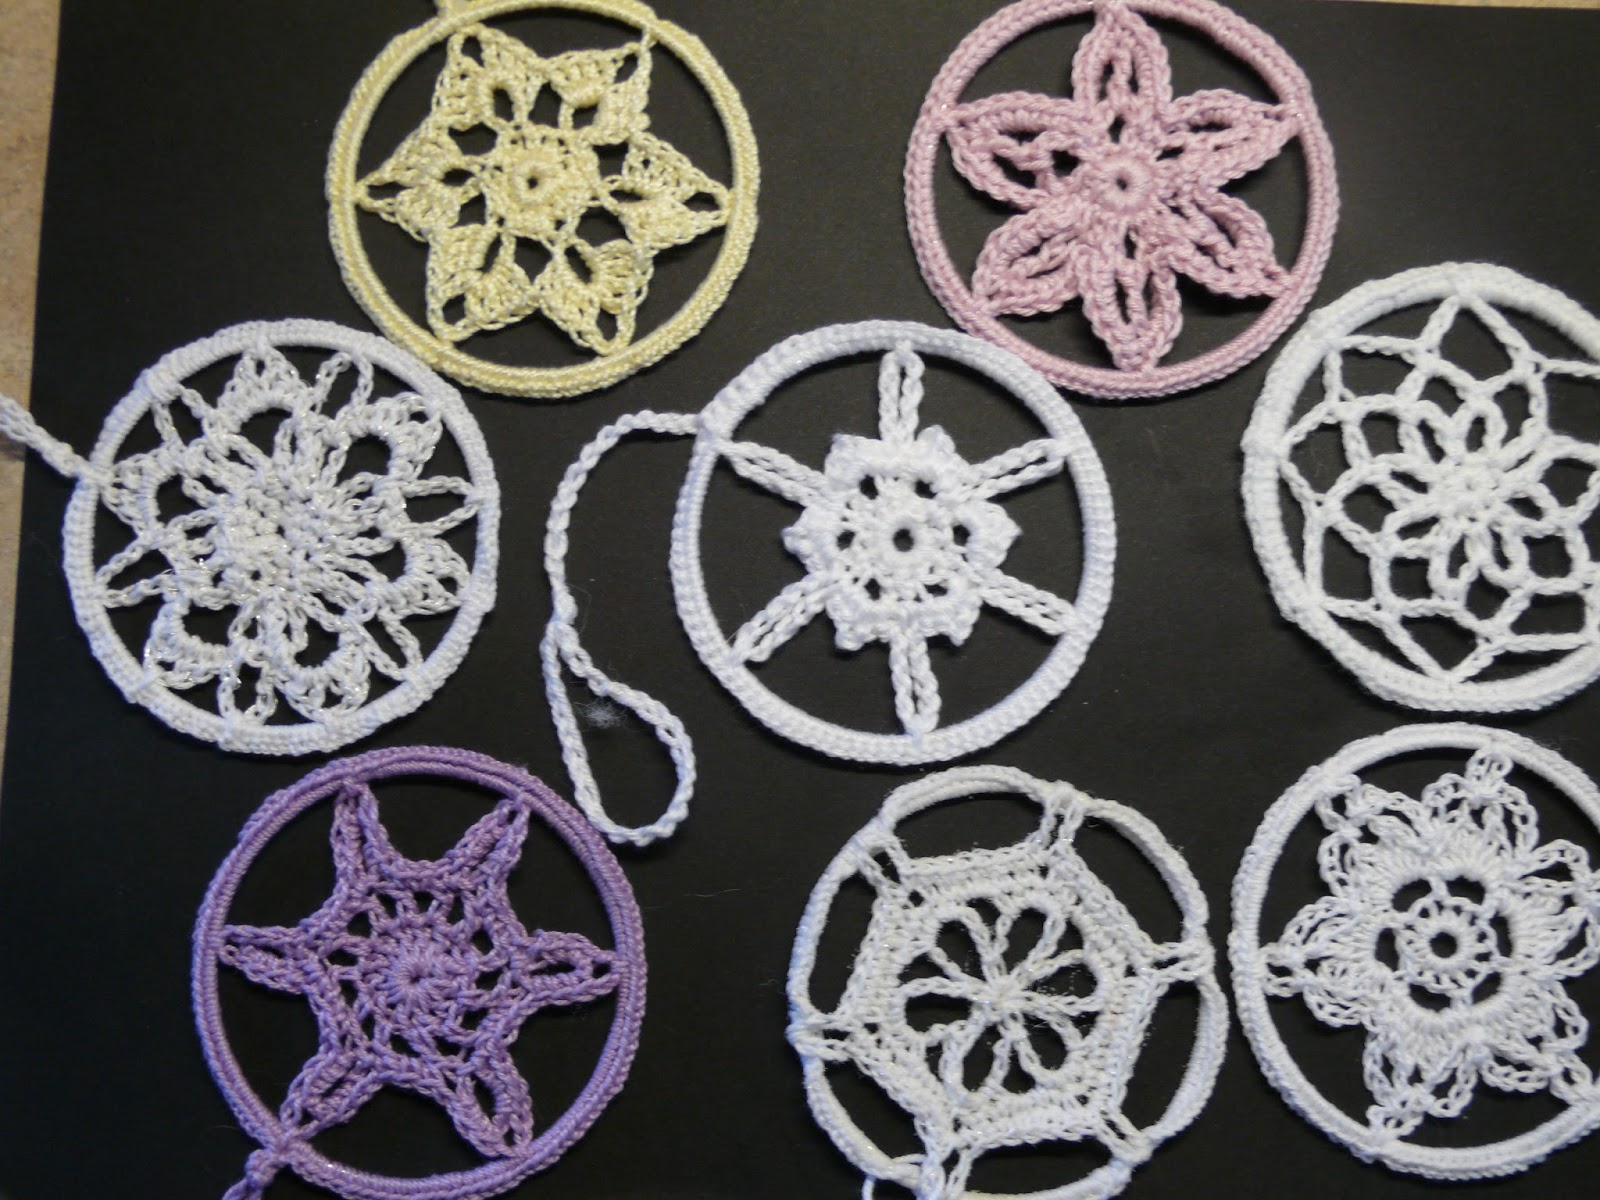 String Theory Crochet Snowflakes Mobiles And An Elf Snowflakescrochetpatterndiagram I Have Used The Patterns In Book Then Crocheted Around Bangle Catching Points Of Snowlakes At Regular Intervals